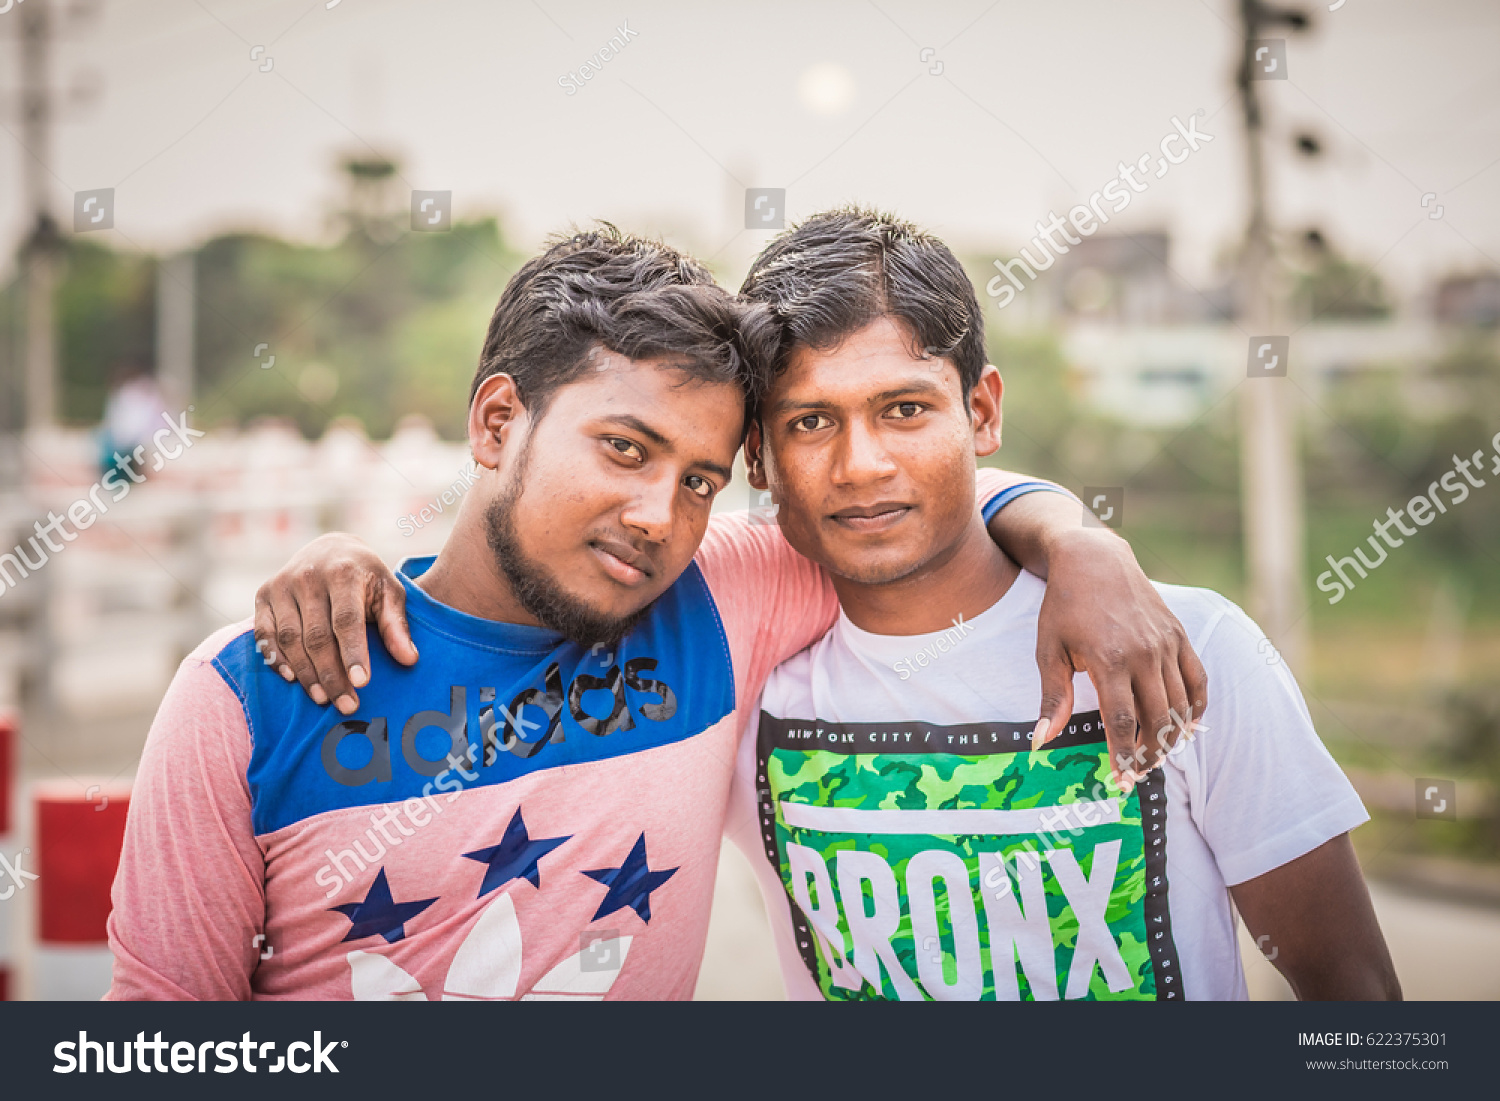 Dhaka bangladesh april 15 2017 two bangladeshi friends posing in front of